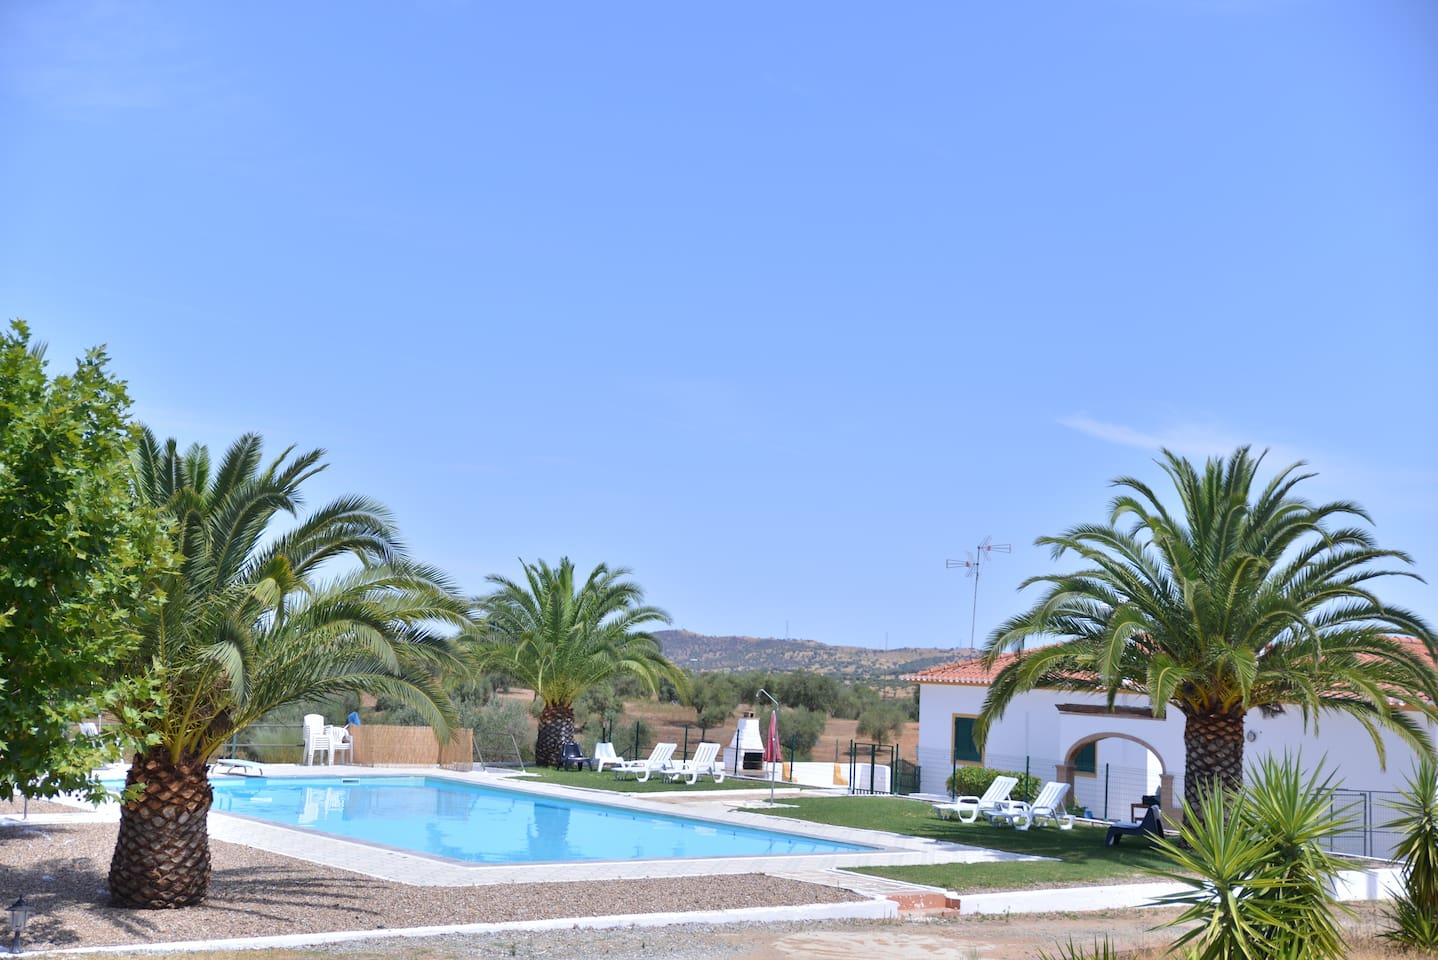 break! Holidays House - swimming pool & outdoors